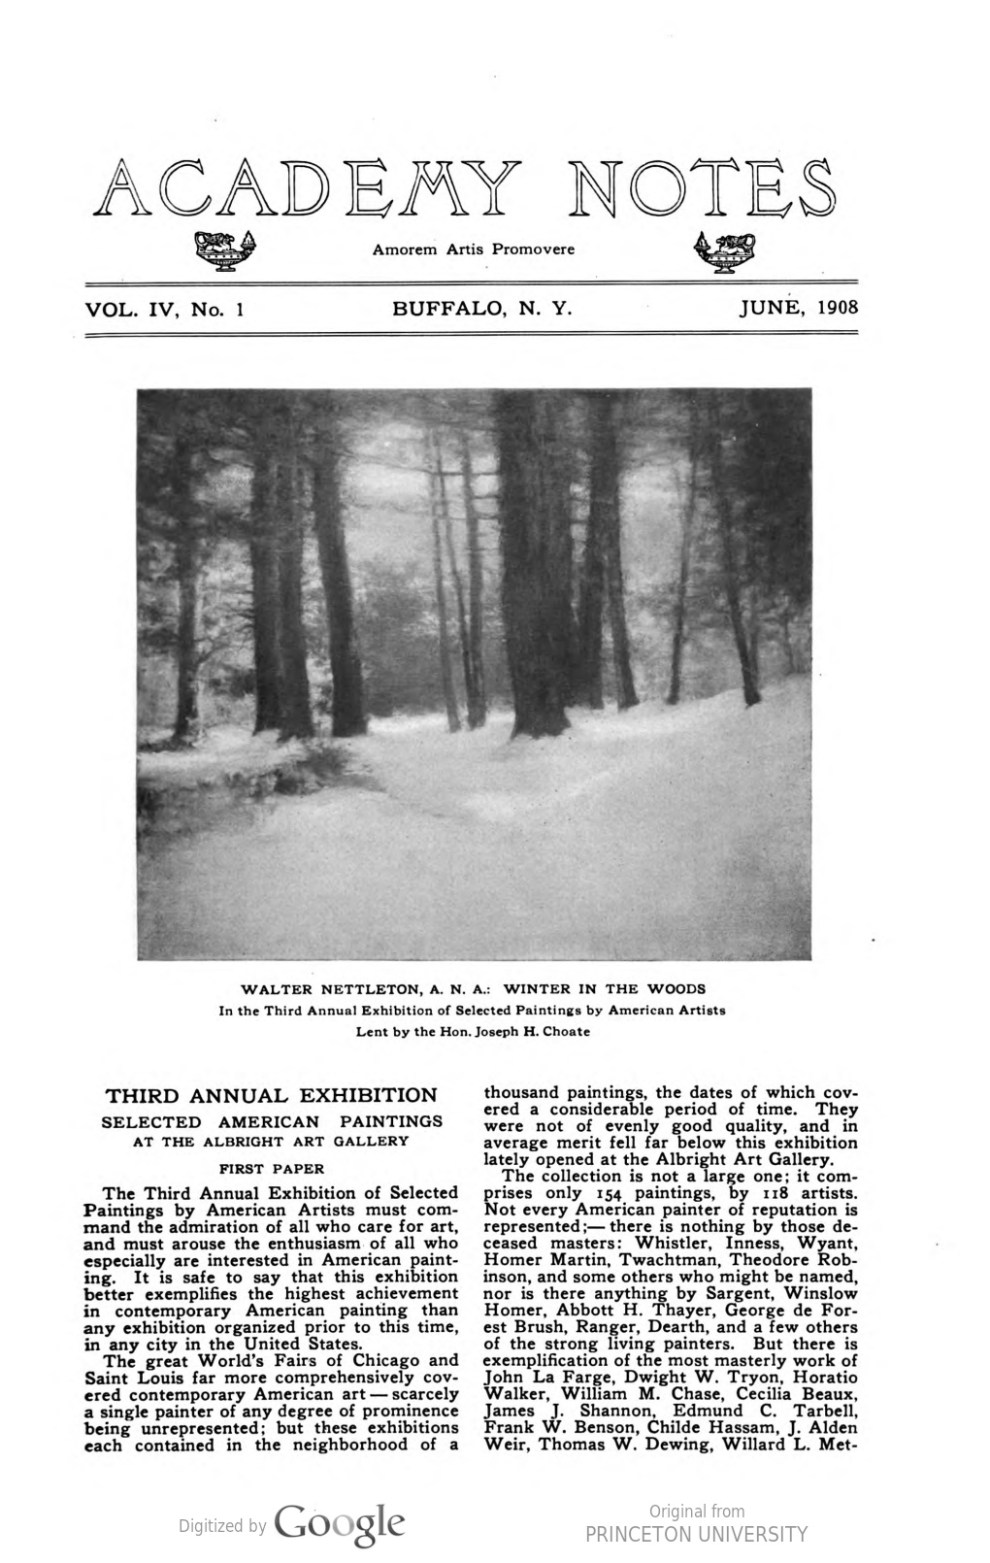 "Academy Notes, Buffalo Fine Arts Academy, Albright Art Gallery, Buffalo, NY, ""Third Annual Exhibition Selected American Paintings at the Albright Art Gallery First Paper"", June, 1908, Volume 4, Number 1, page 1-7, not illustrated"